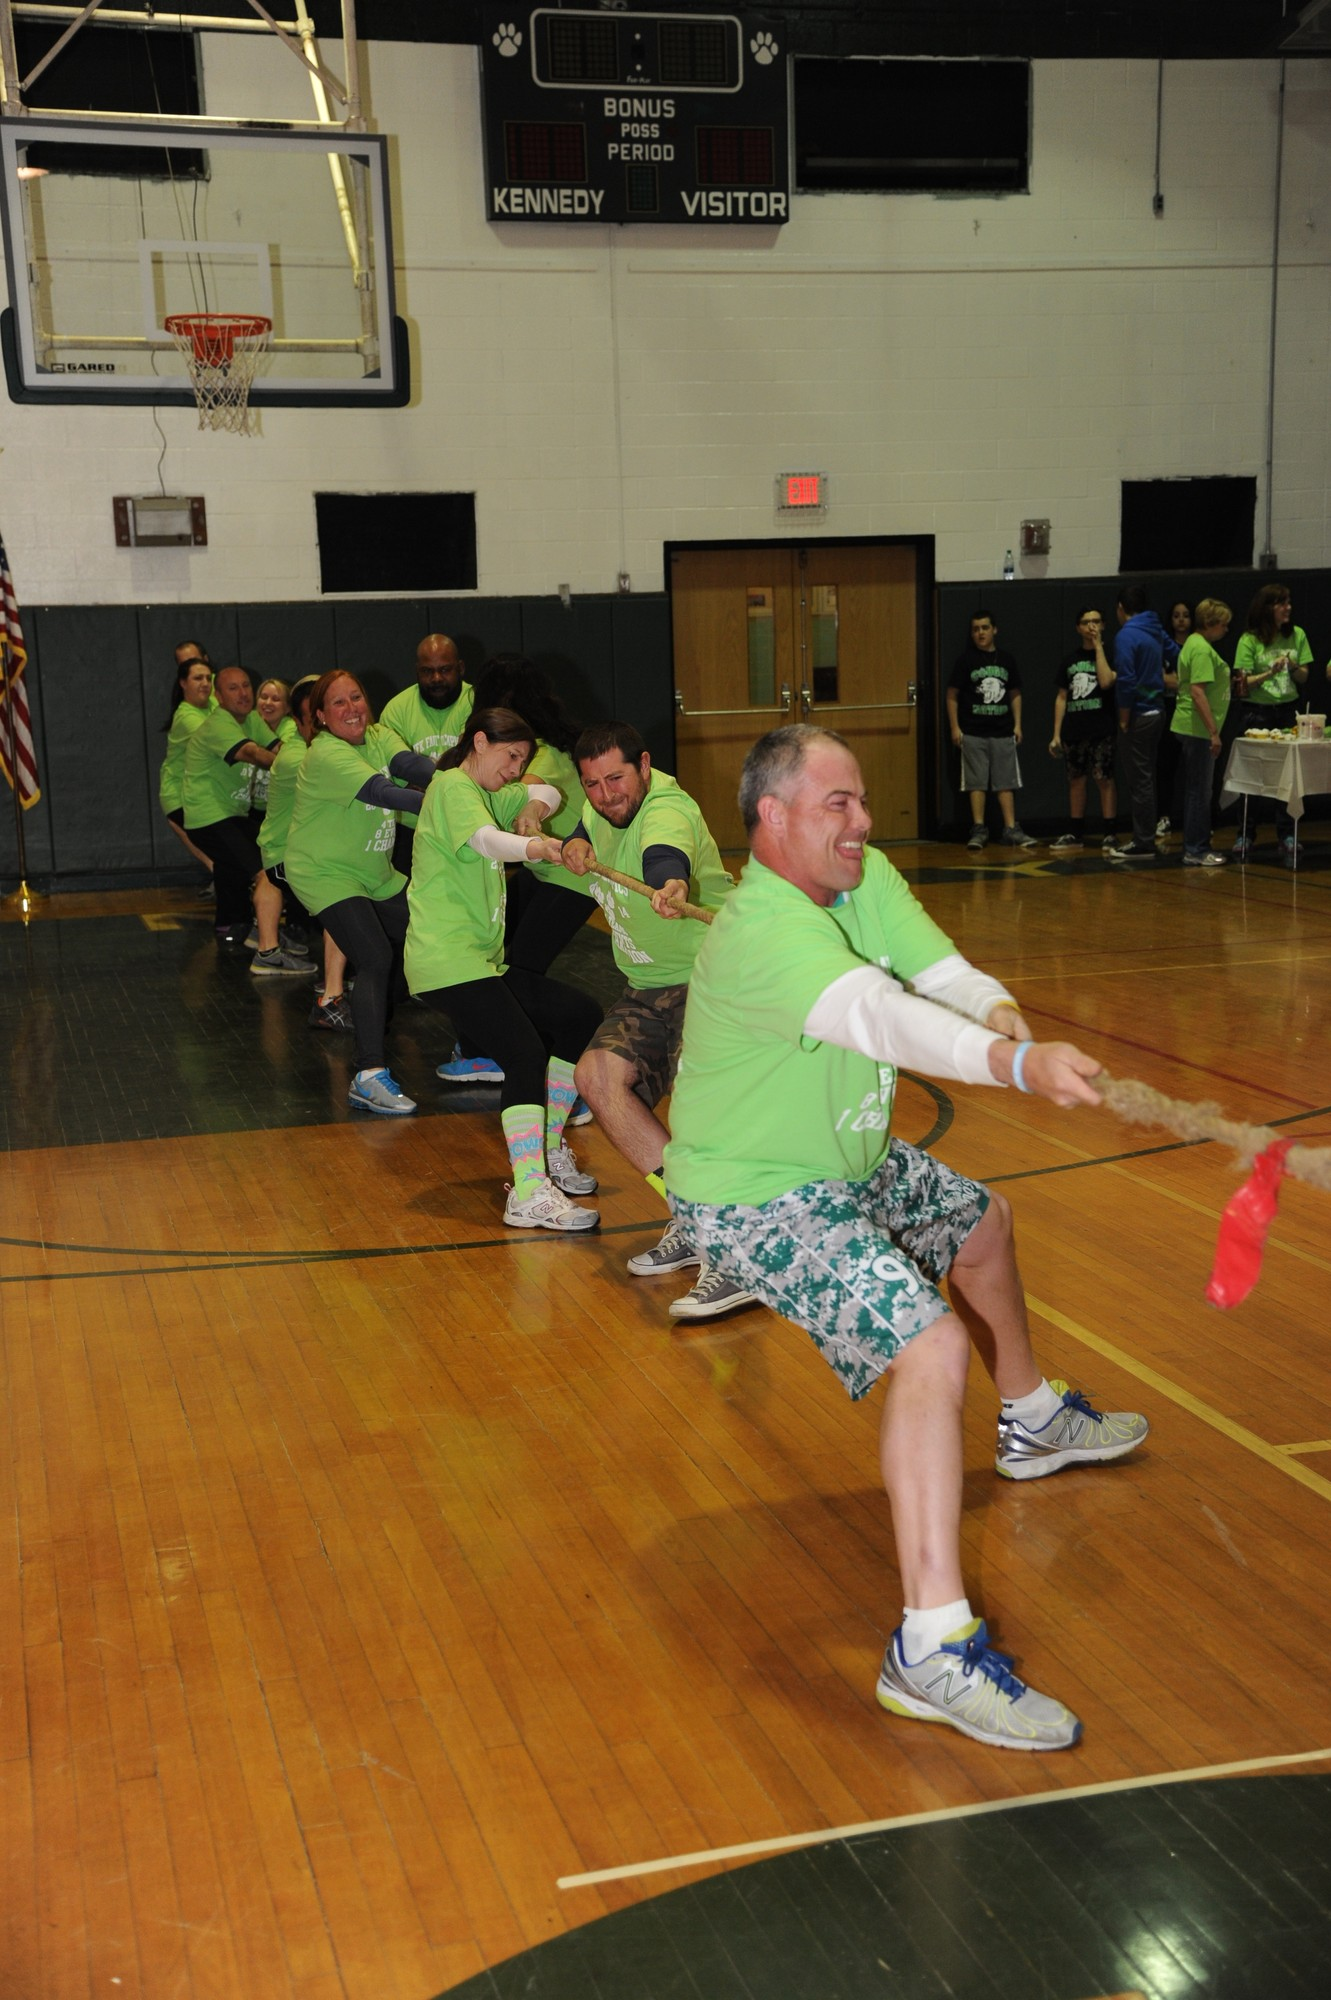 Team Andree gave it their all in the tug-of-war event.